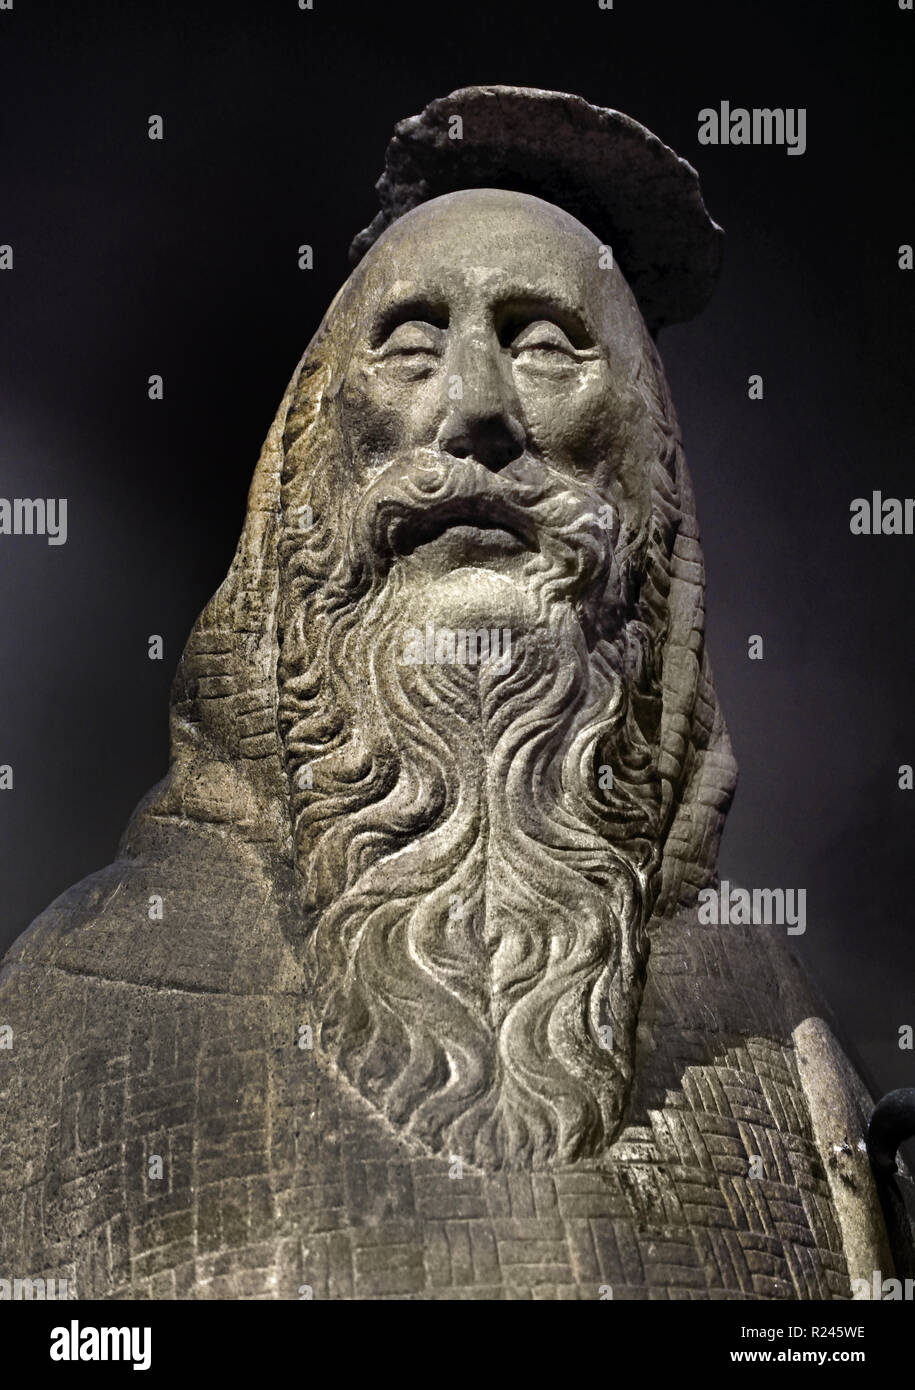 St Paul the Hermit ( Milanese Sculptor) 15th Century Museum - Milan Cathedral (Duomo di Milano) Italy, Italian. - Stock Image